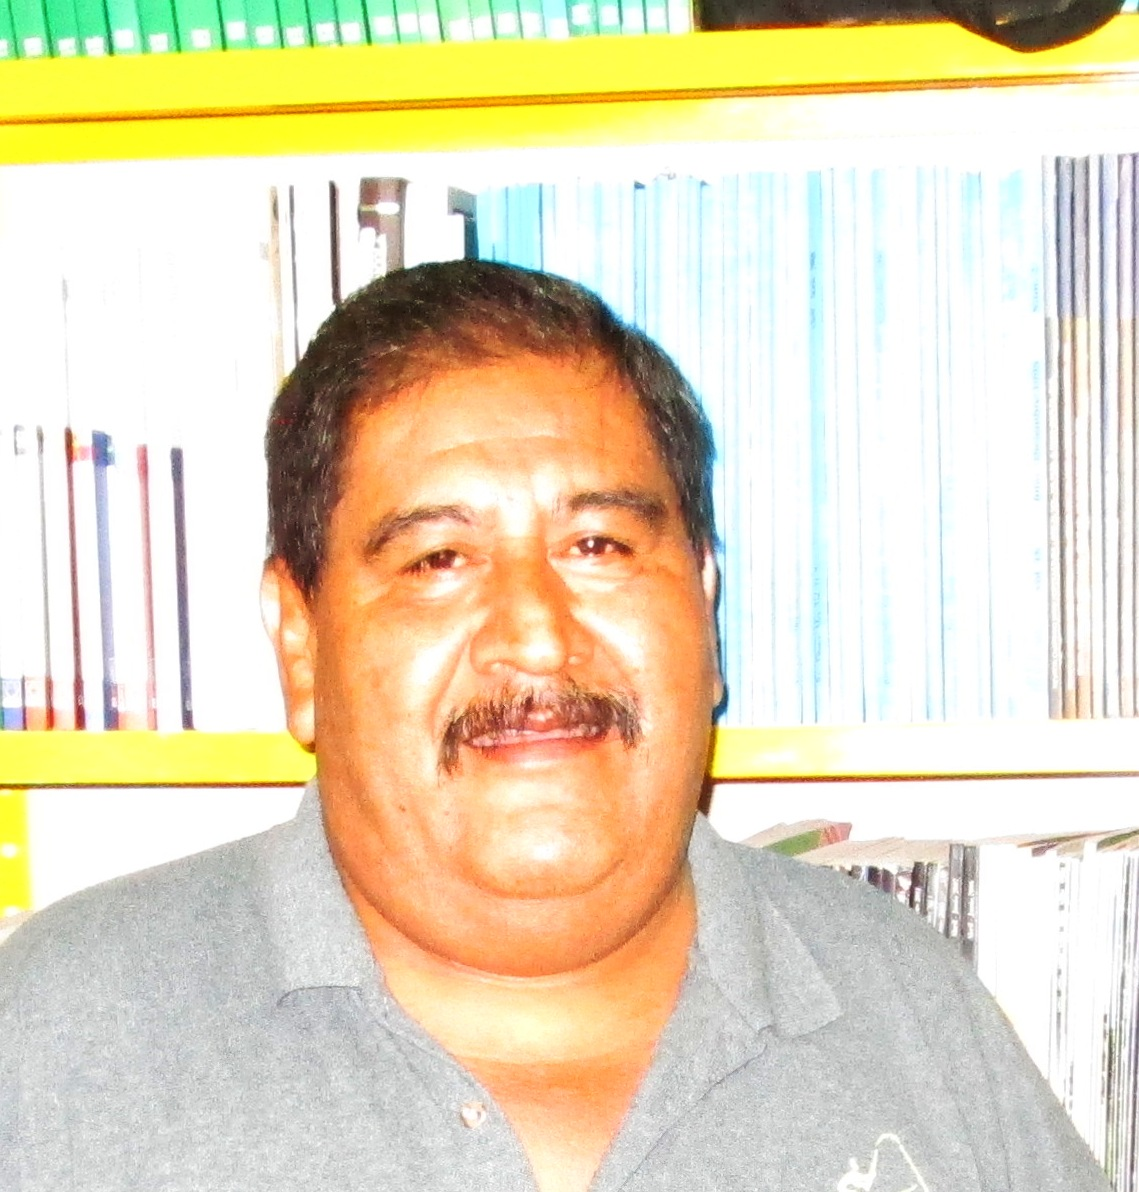 José de la Cruz Casillas